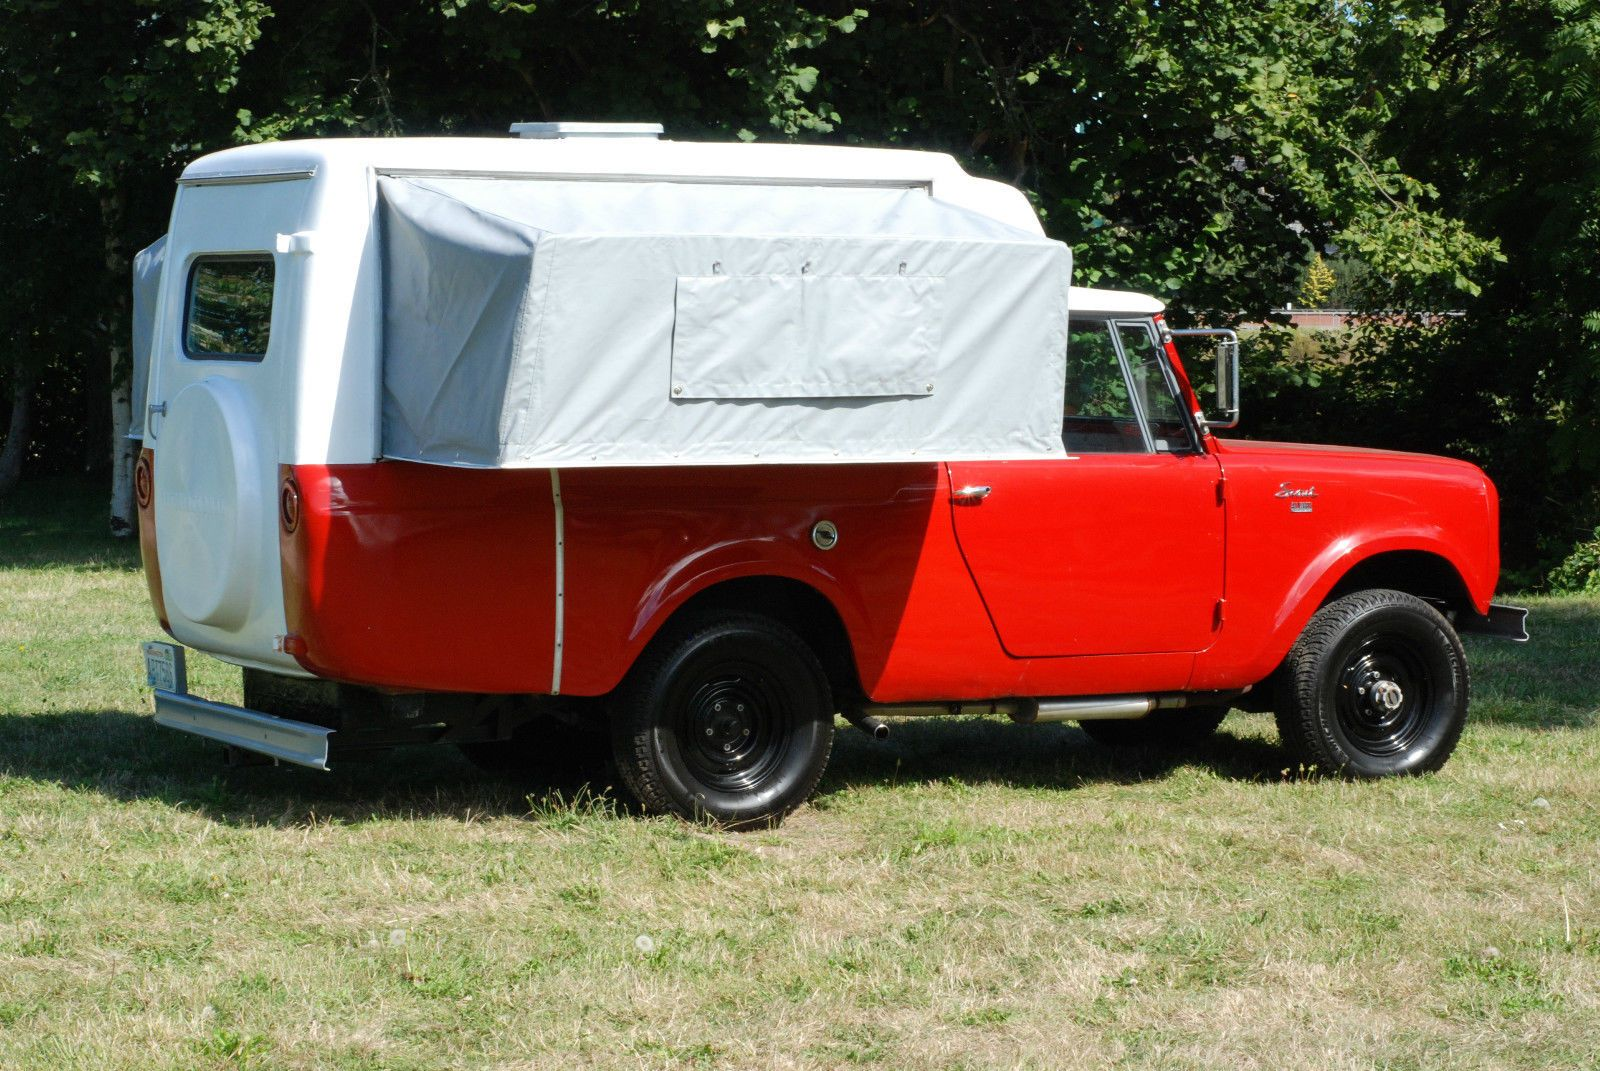 International-Harvester-Scout-Camper-1964-scout-80-camper-4-x-4-warn-overdrive-campermobile